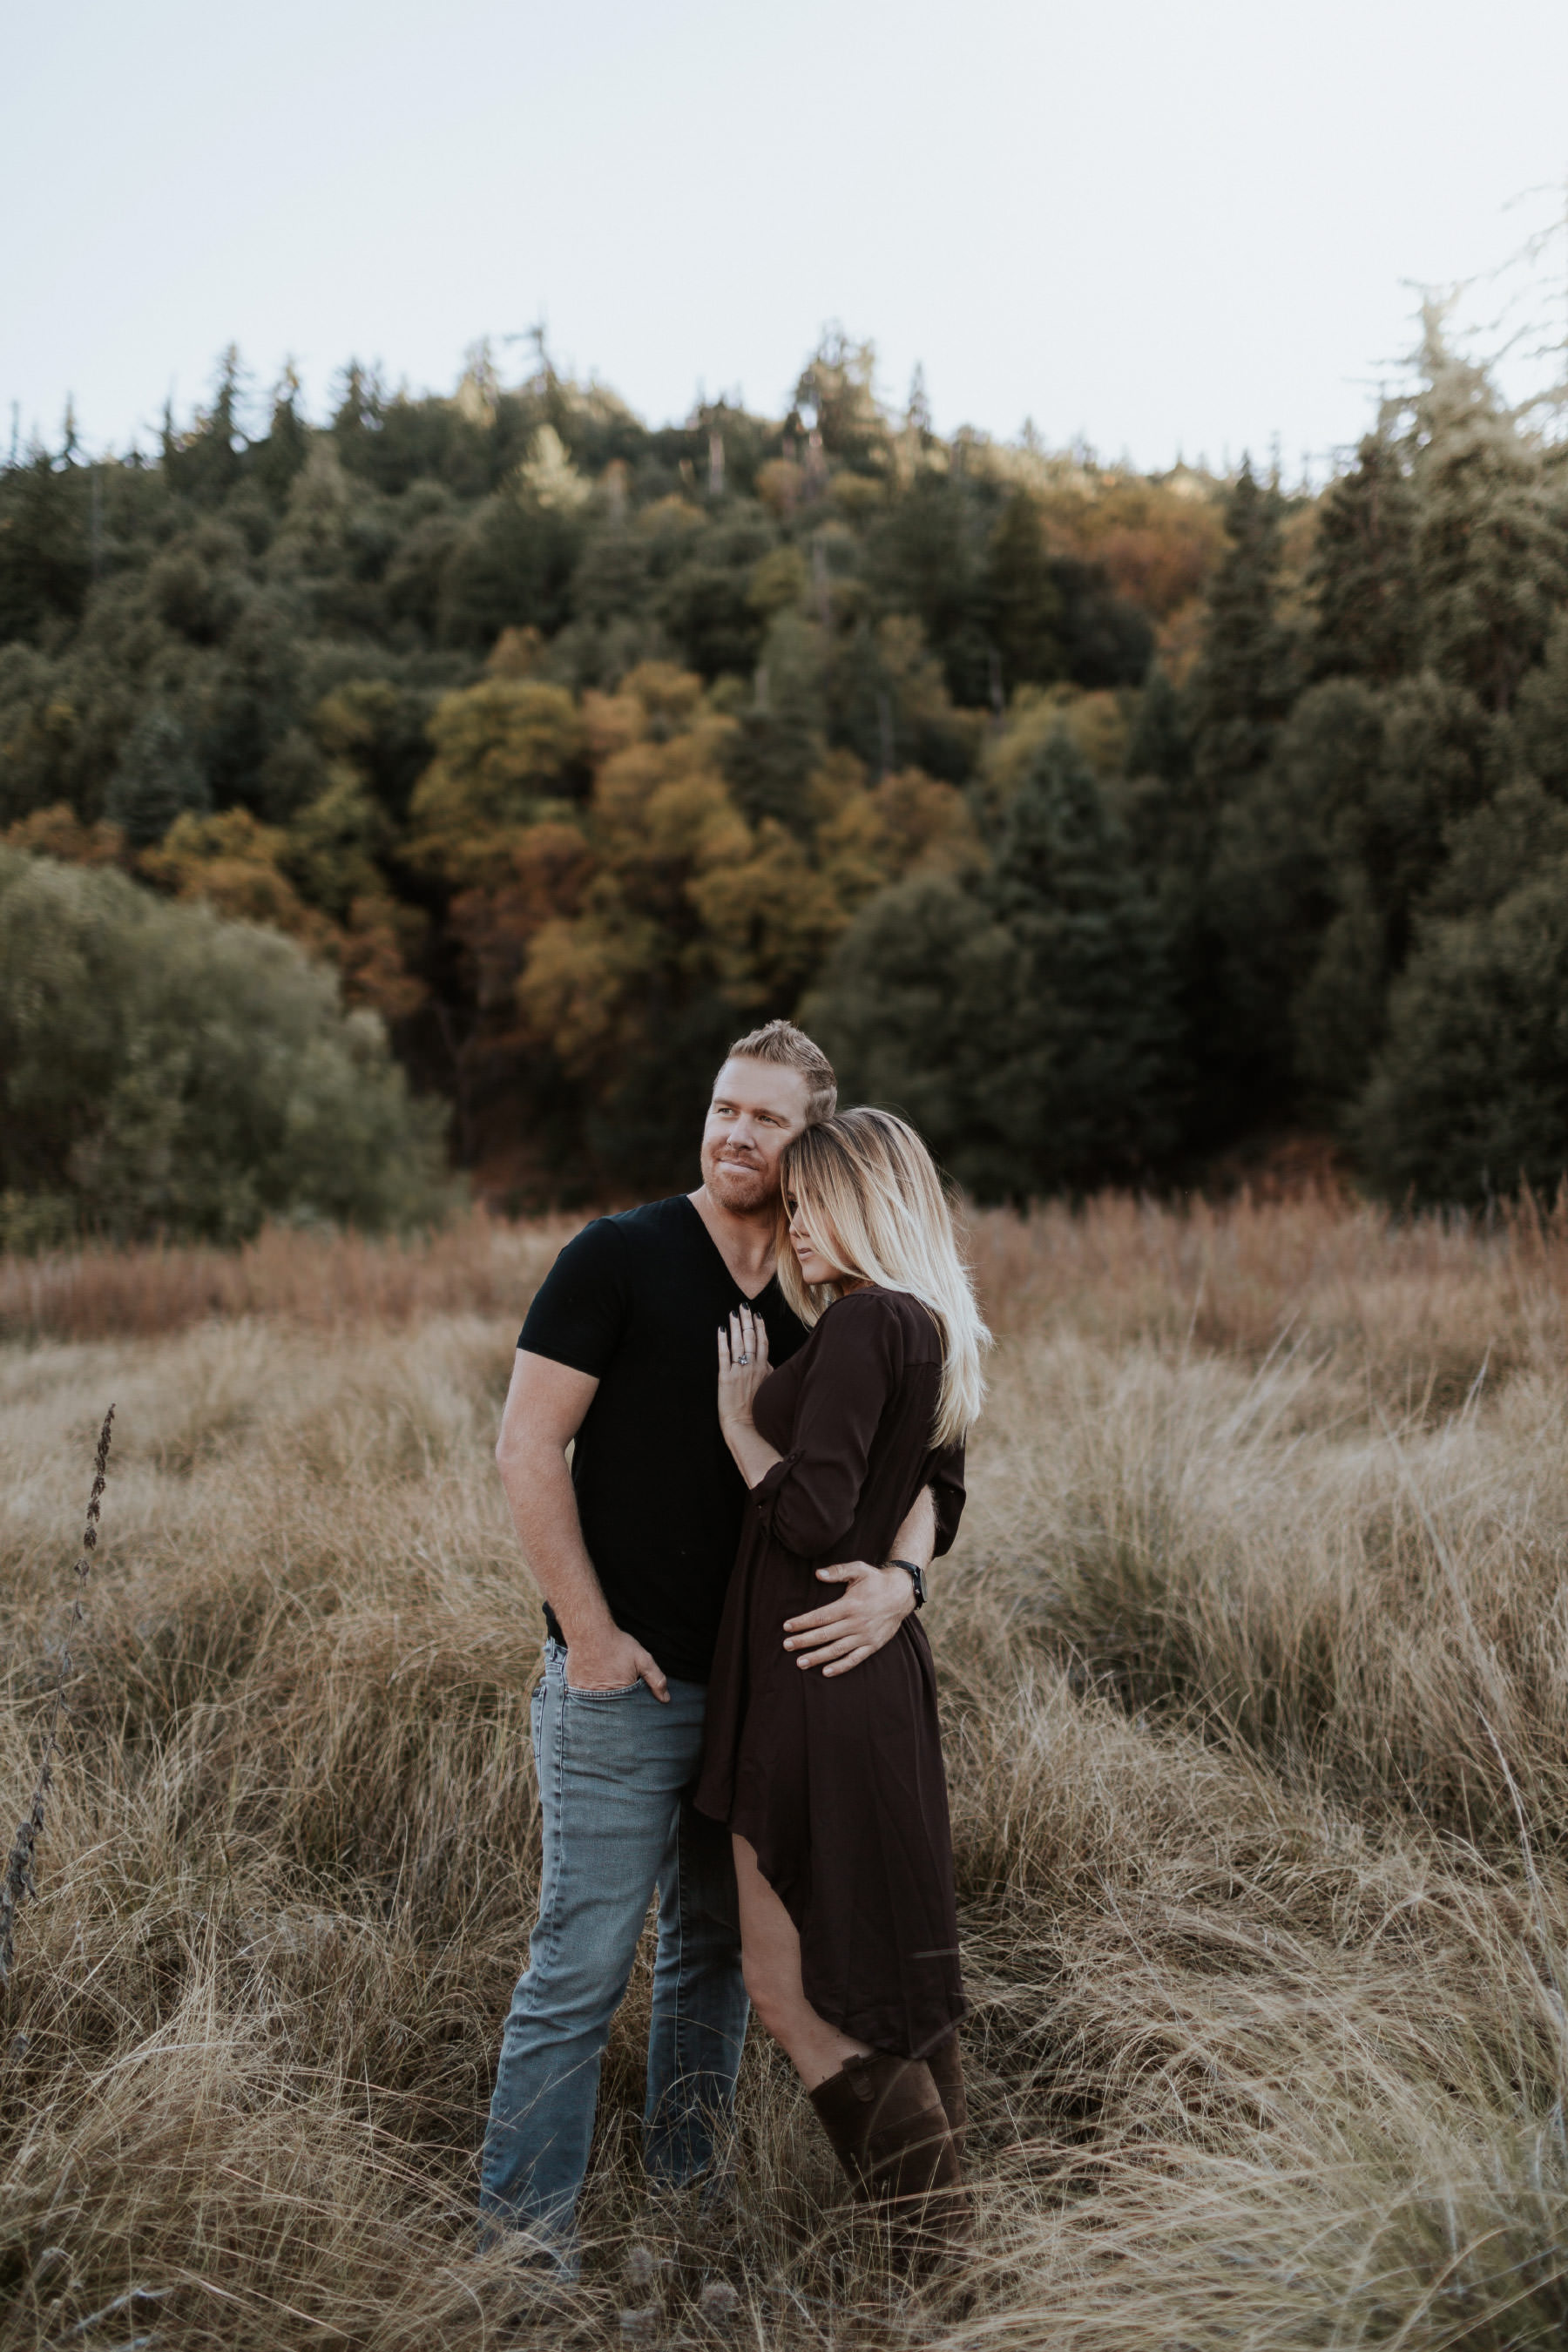 Couple embracing at Palomar Mountain with fall colored trees in the background